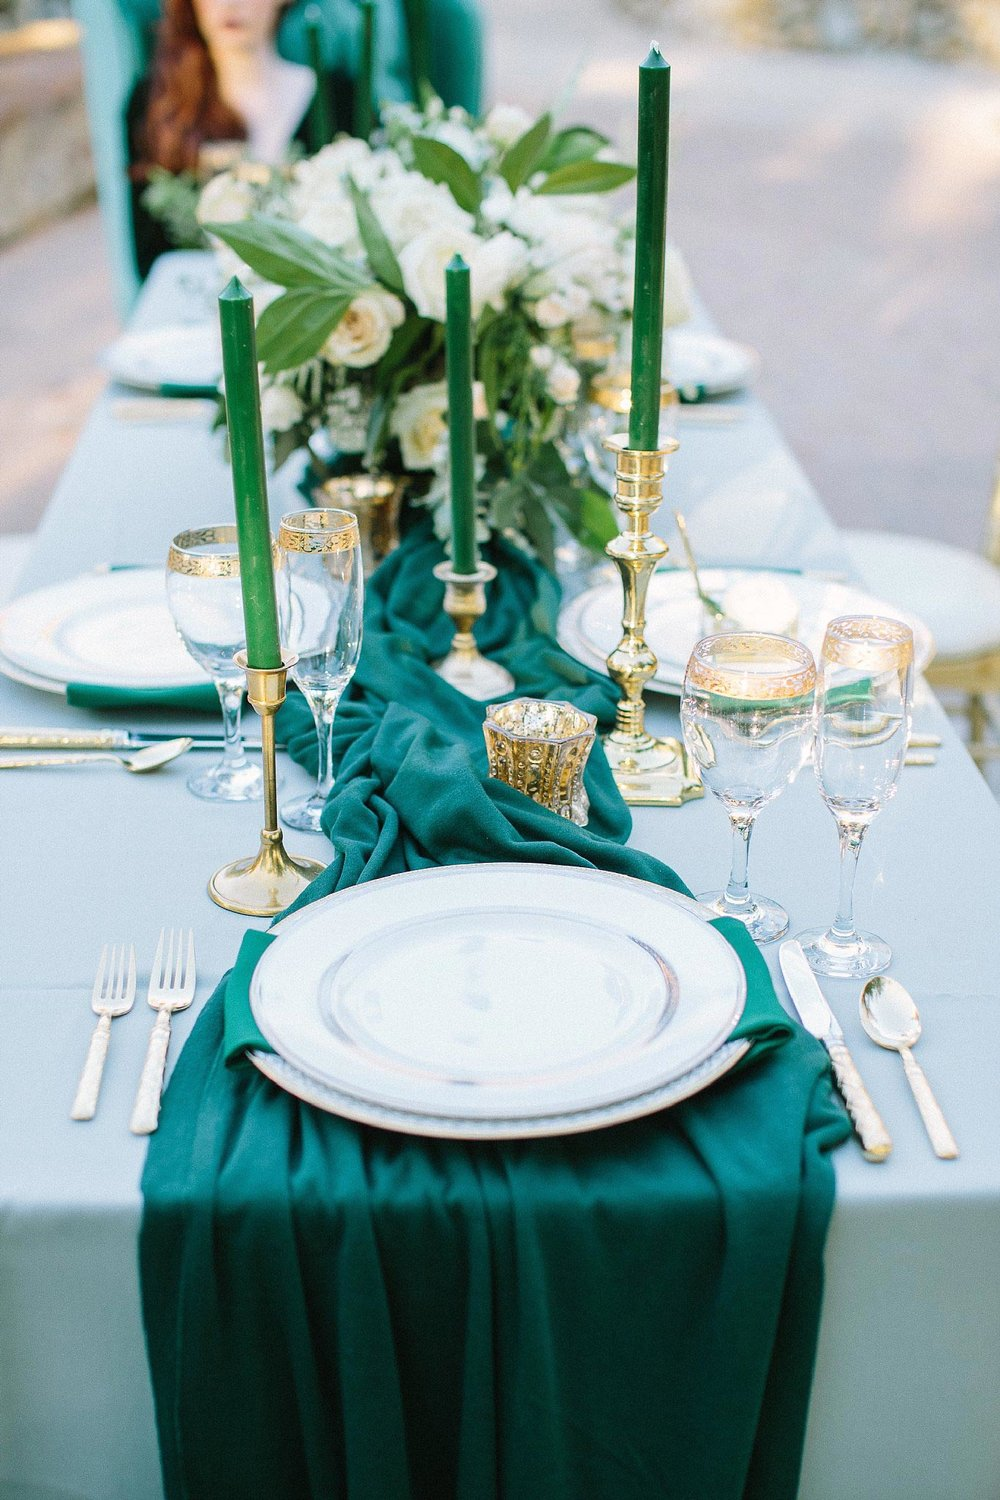 Greenery_Pantone-Color-of-the-Year-2017_Mansfield-TX_Aristide-Mansfield_Fort-Worth-and-Dallas-Wedding-Planner-and-Designer_Shannon-Rose-Events_0026.jpg